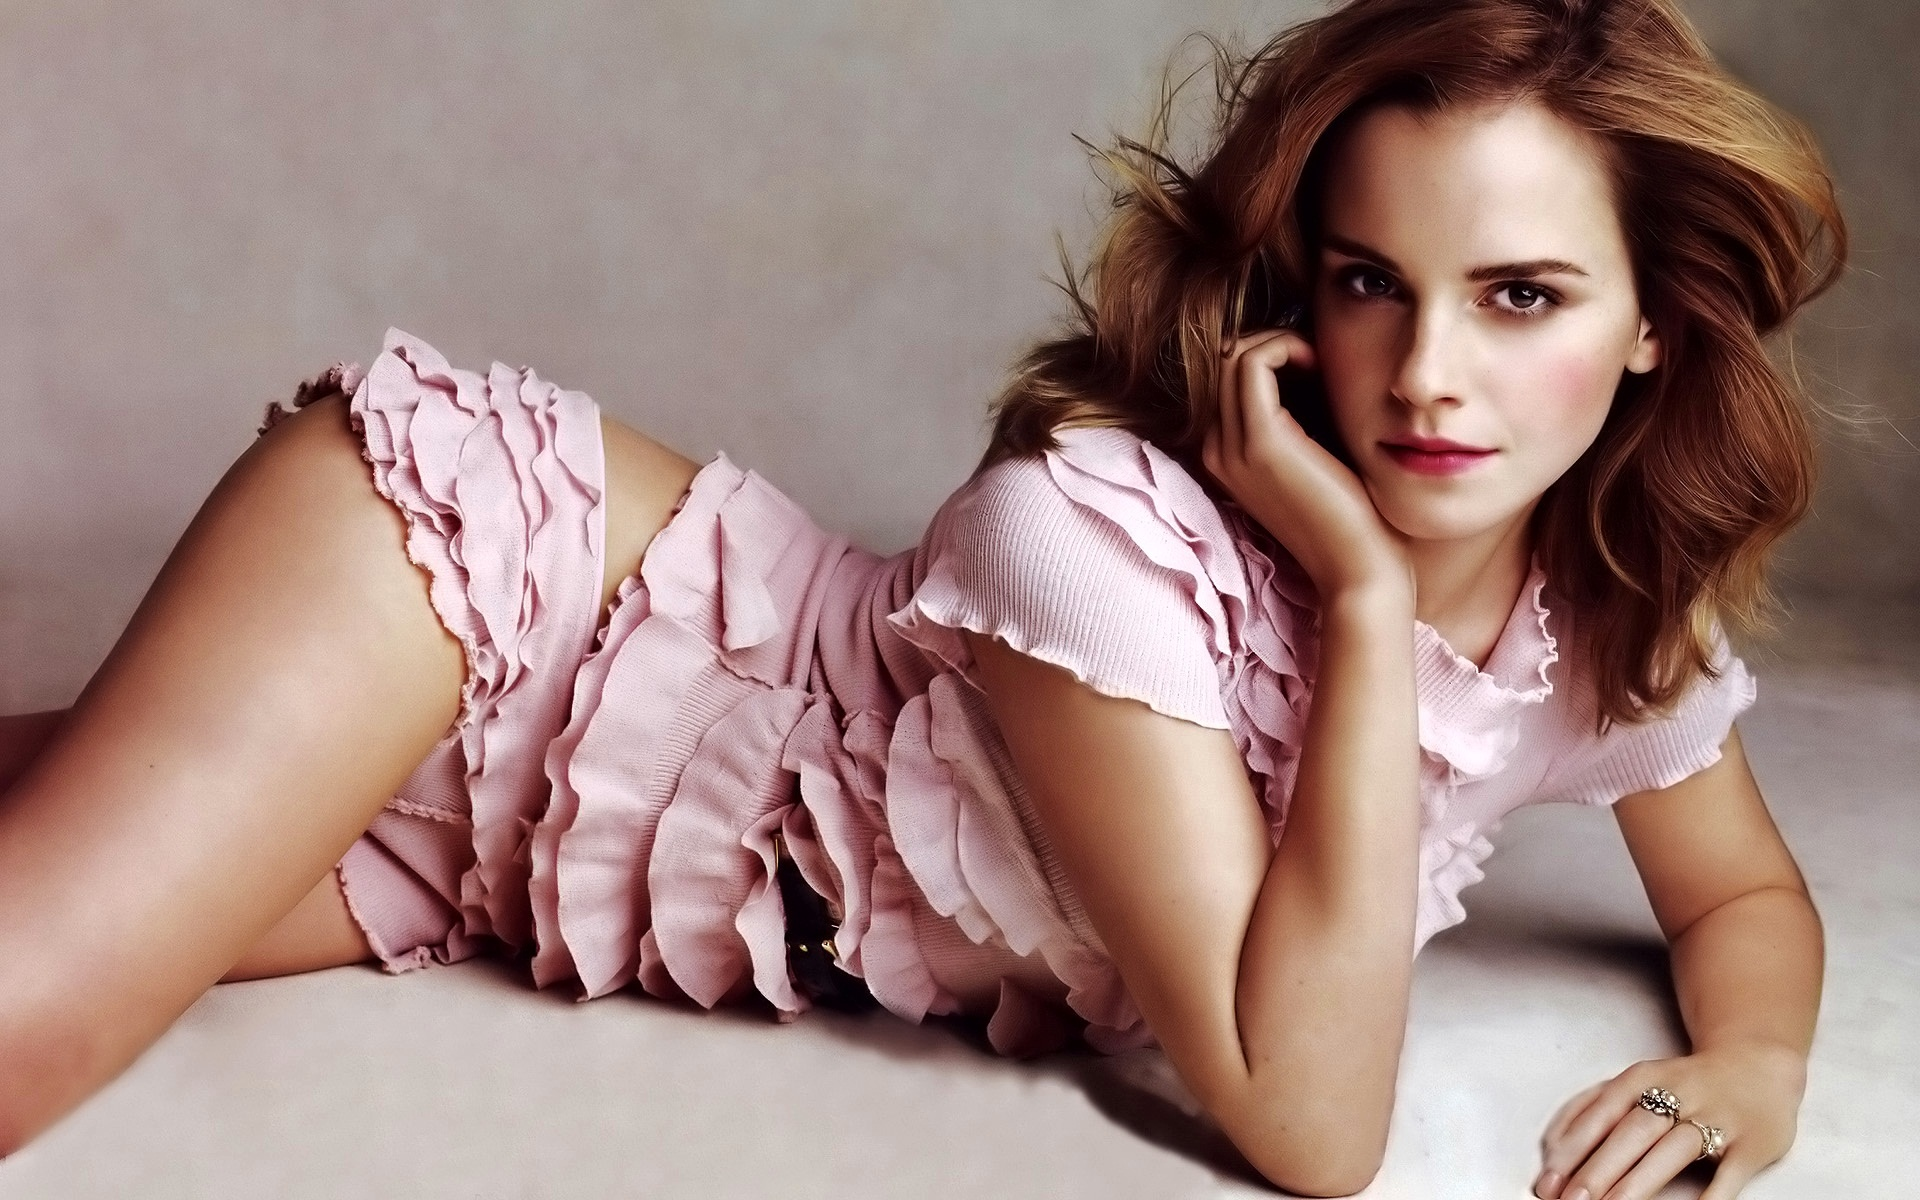 emma watson wallpapers hd A8